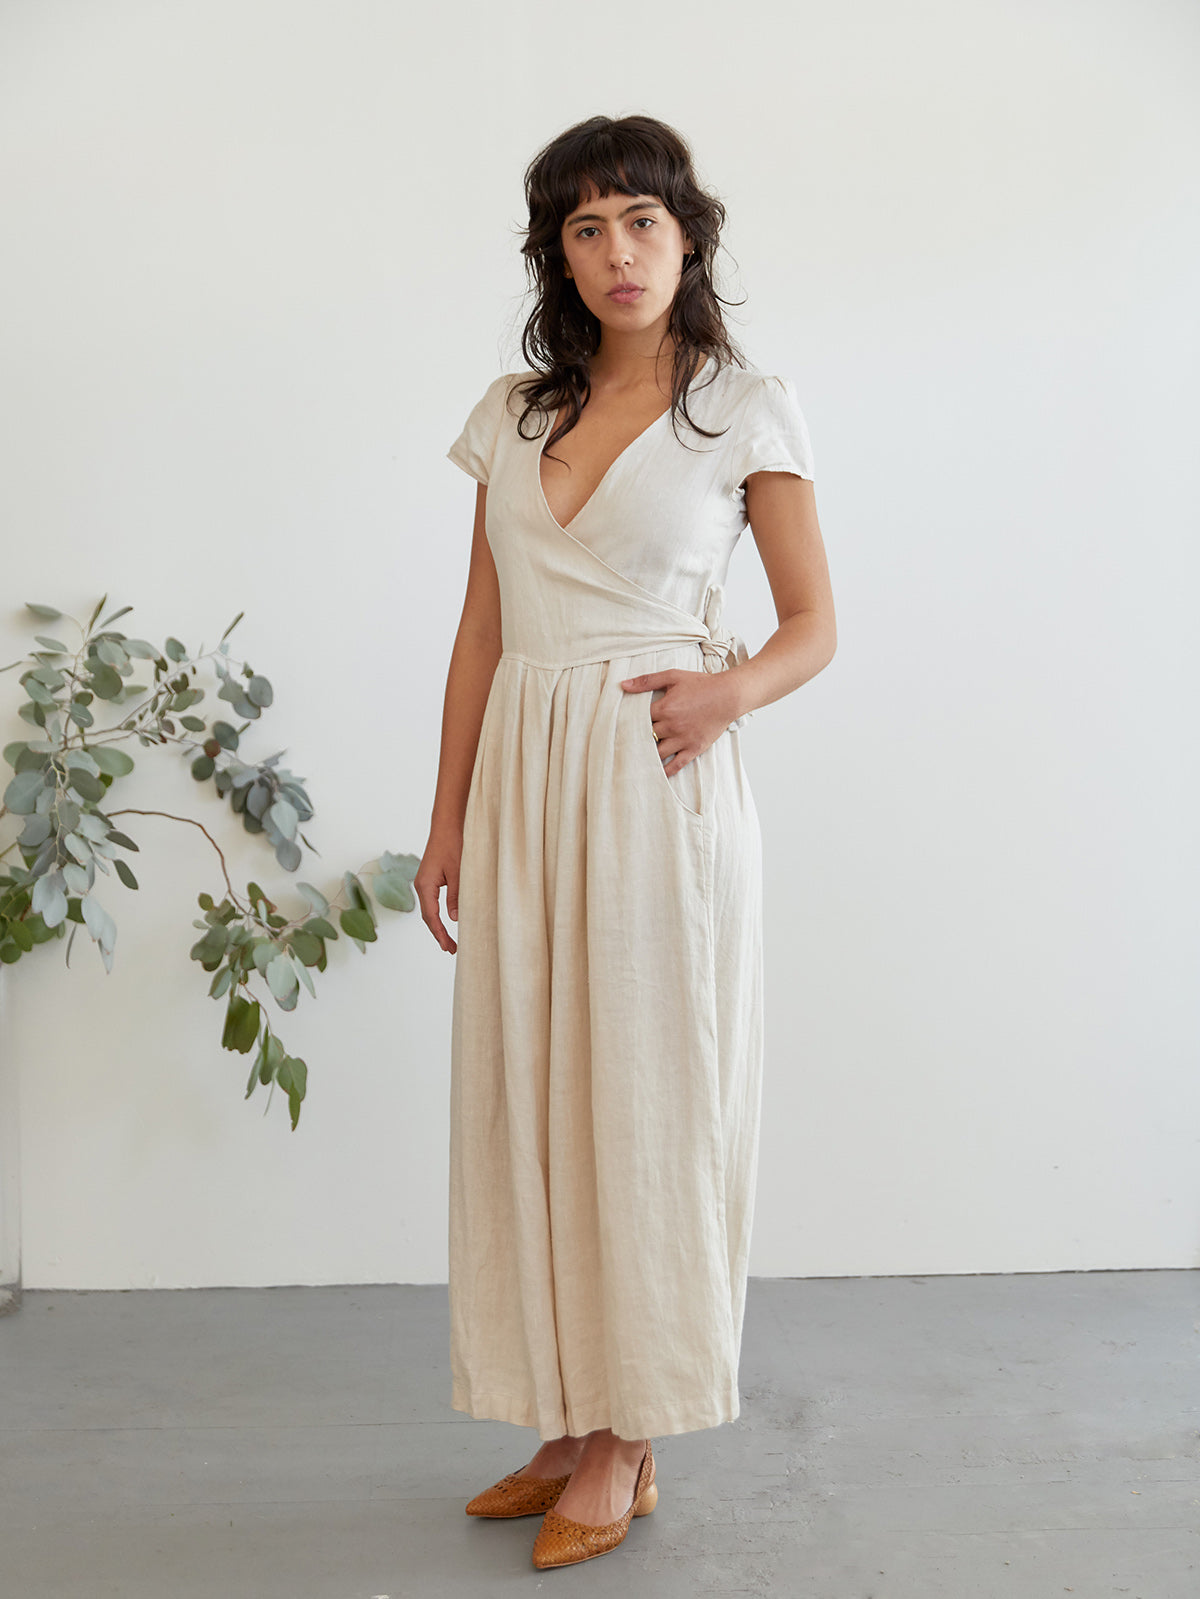 The Angela Jumpsuit | DuneJumpsuits - sugarcandymtn.com